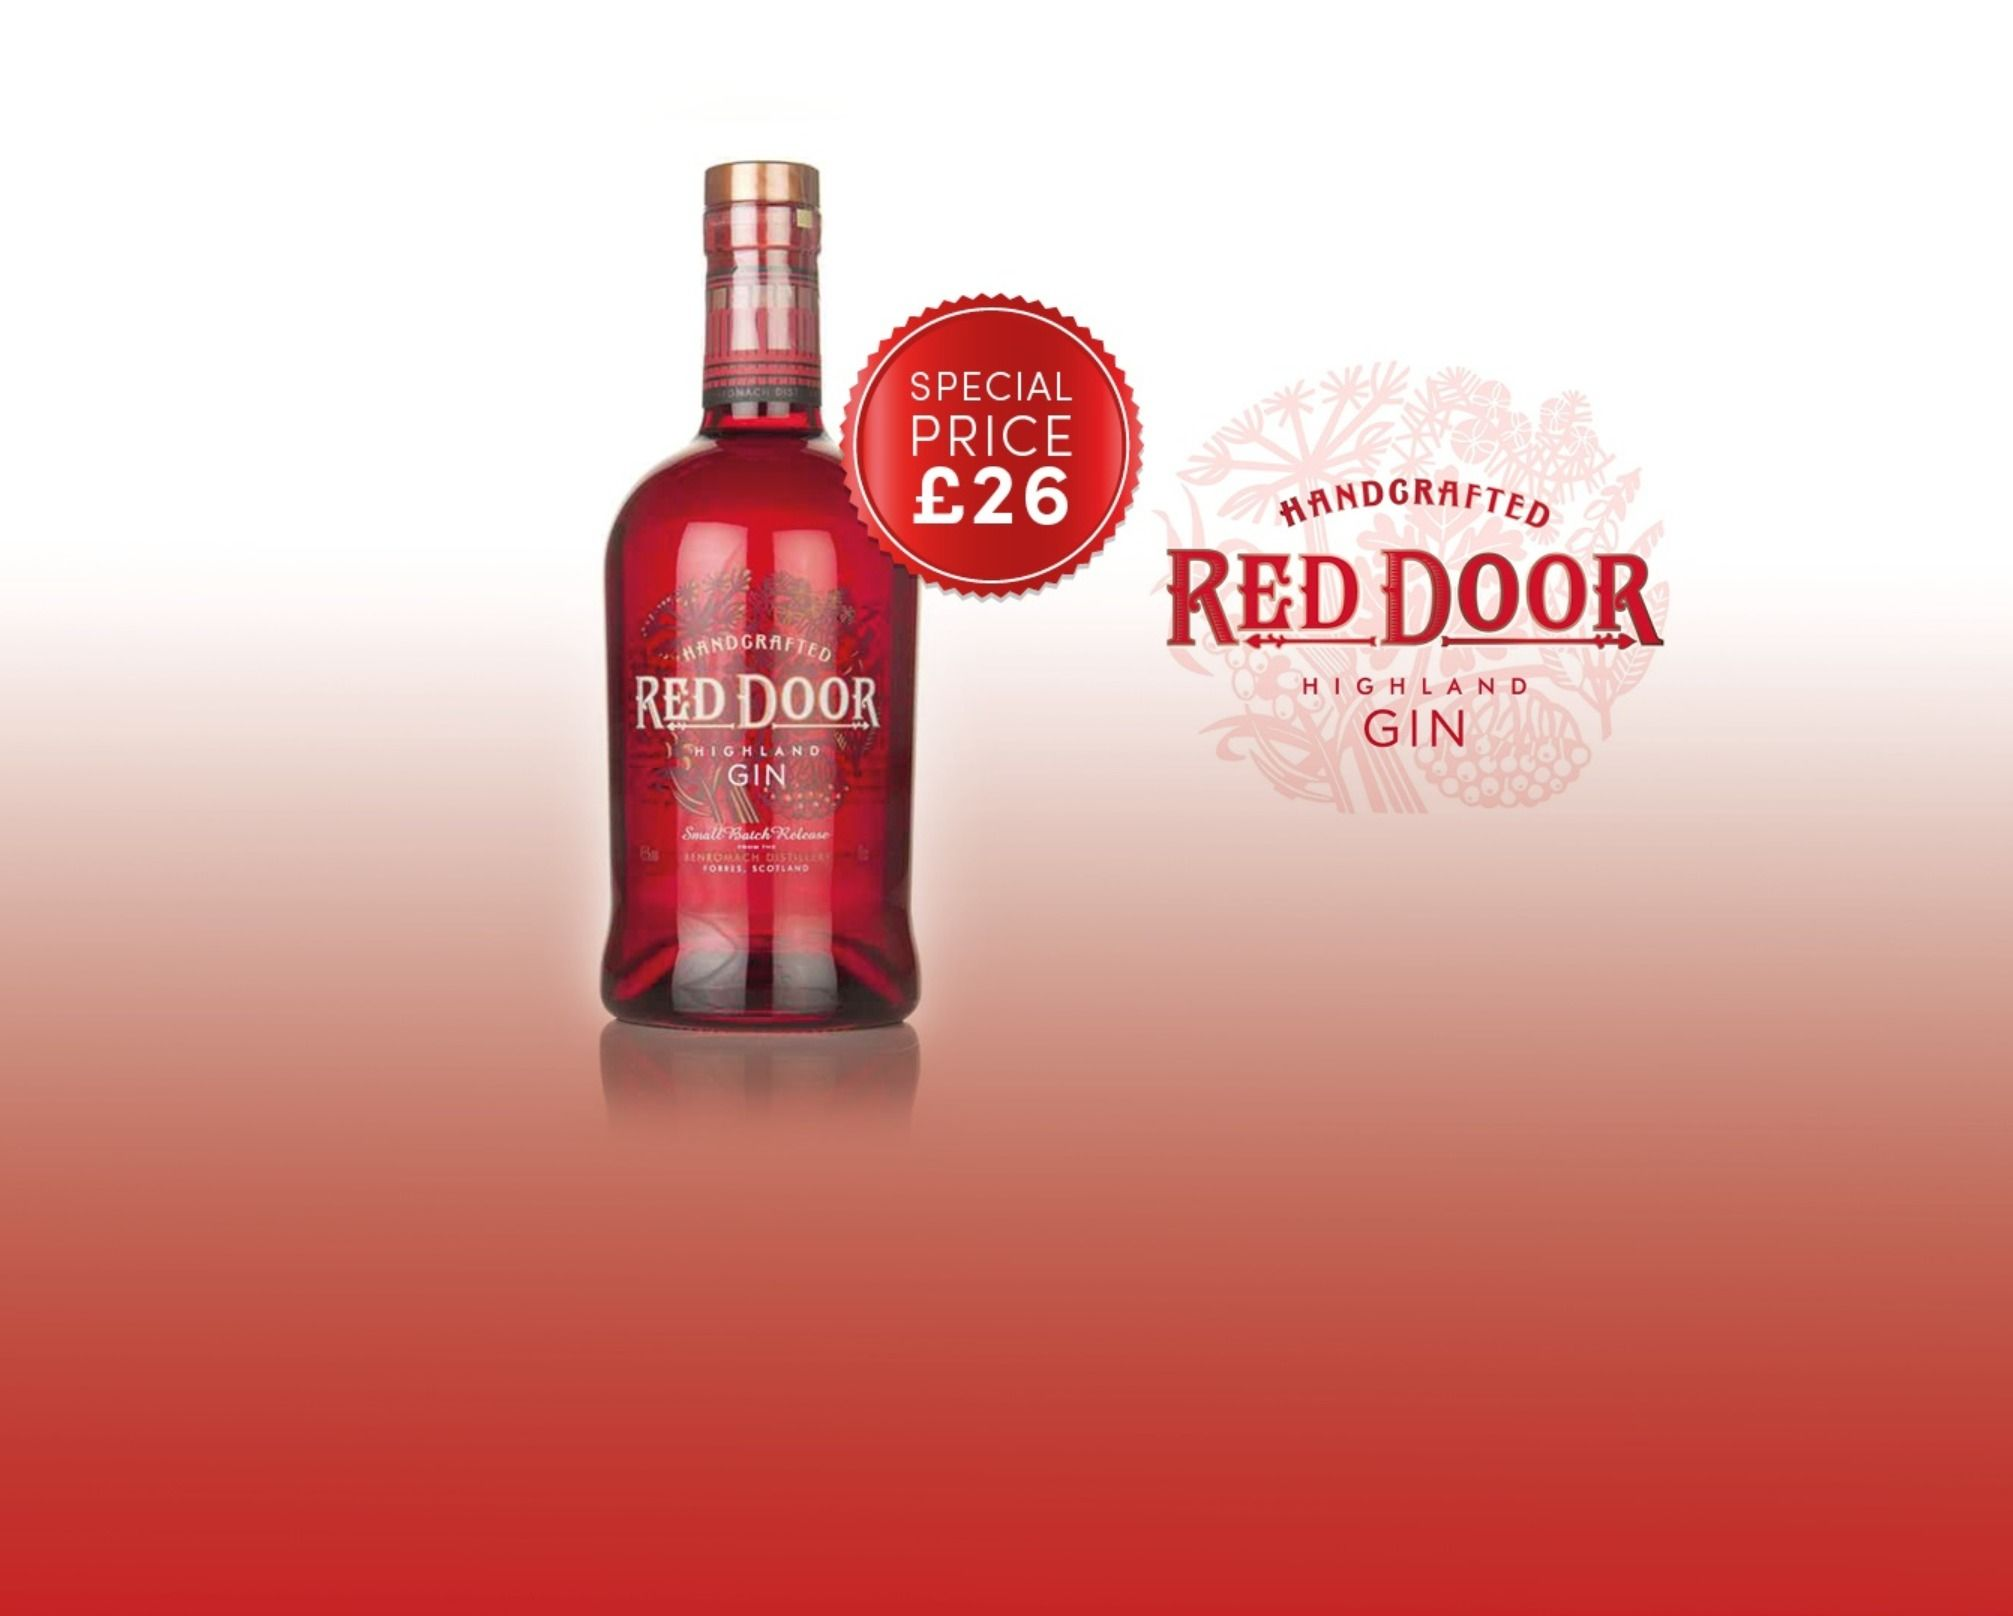 Red Door Small Batch Highland Gin 45 700ml Gin Red Door Scottish Gin